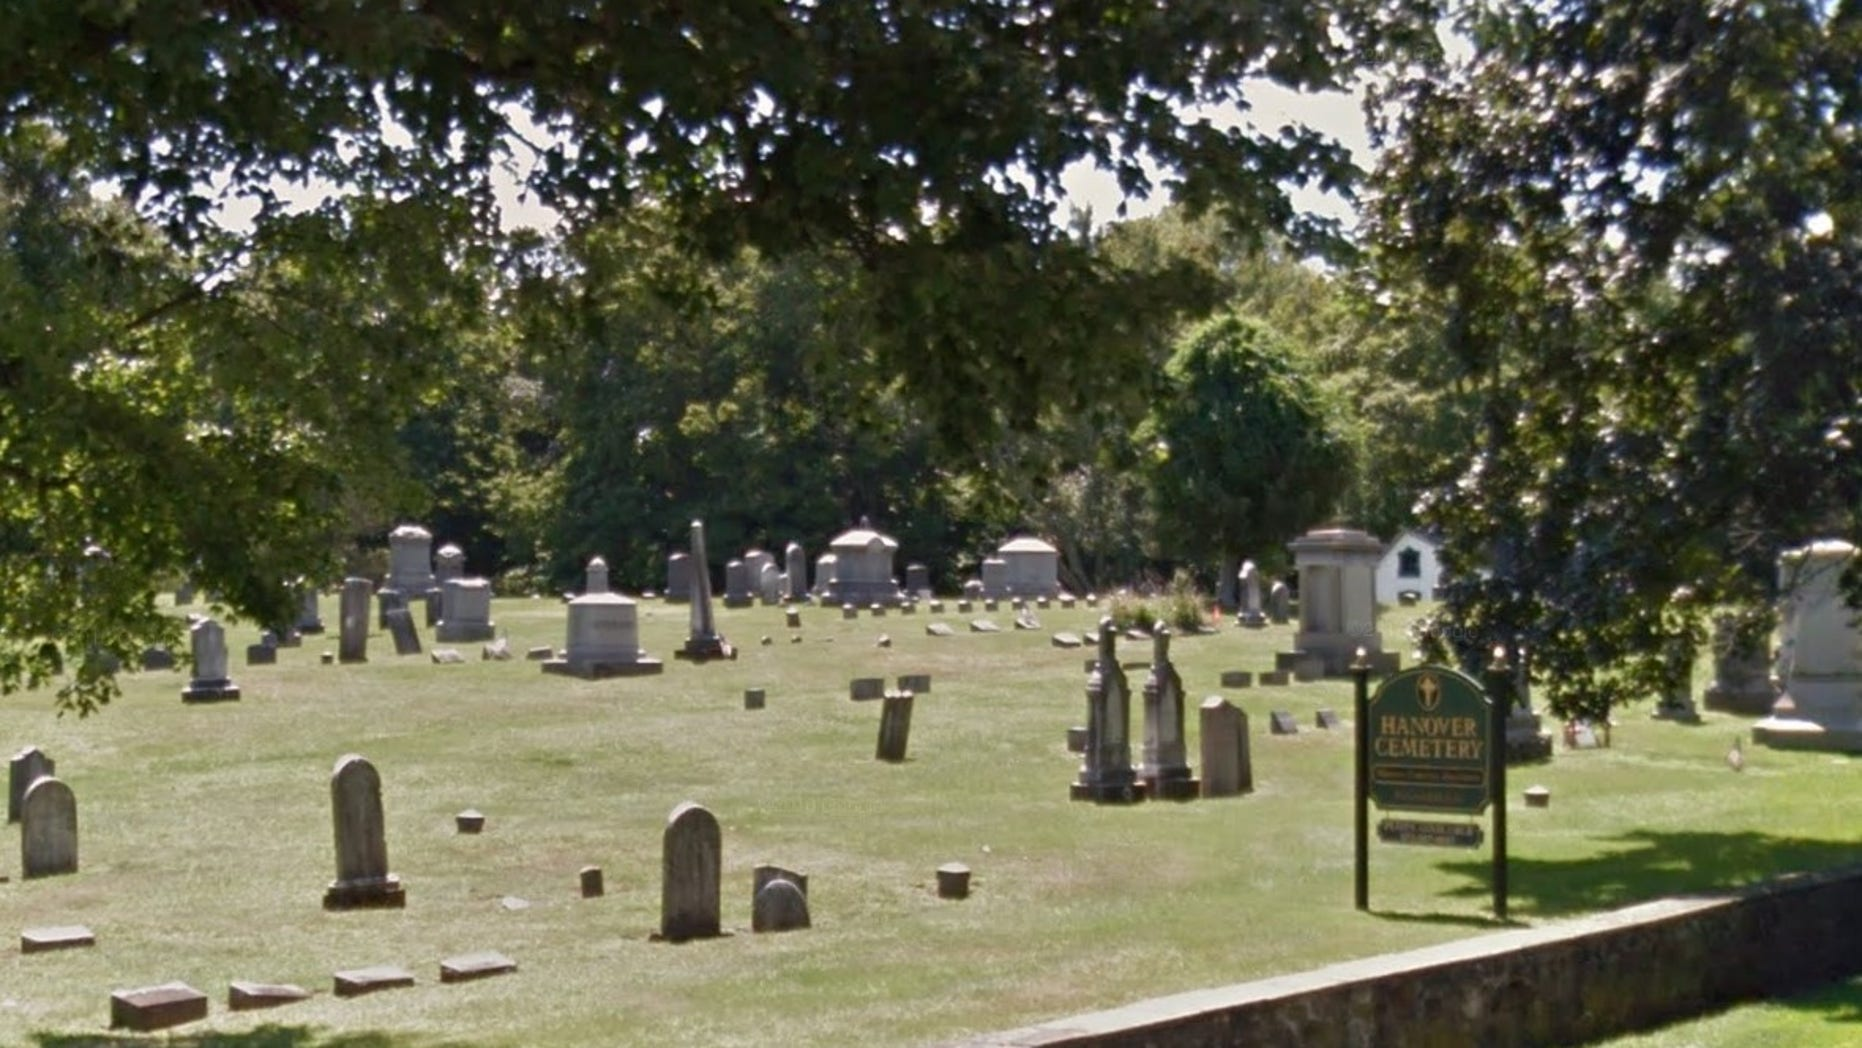 Peter Ferencze, 59, reportedly was rescued Tuesday after he became trapped inside a grave he was digging at Hanover Cemetery in New Jersey.